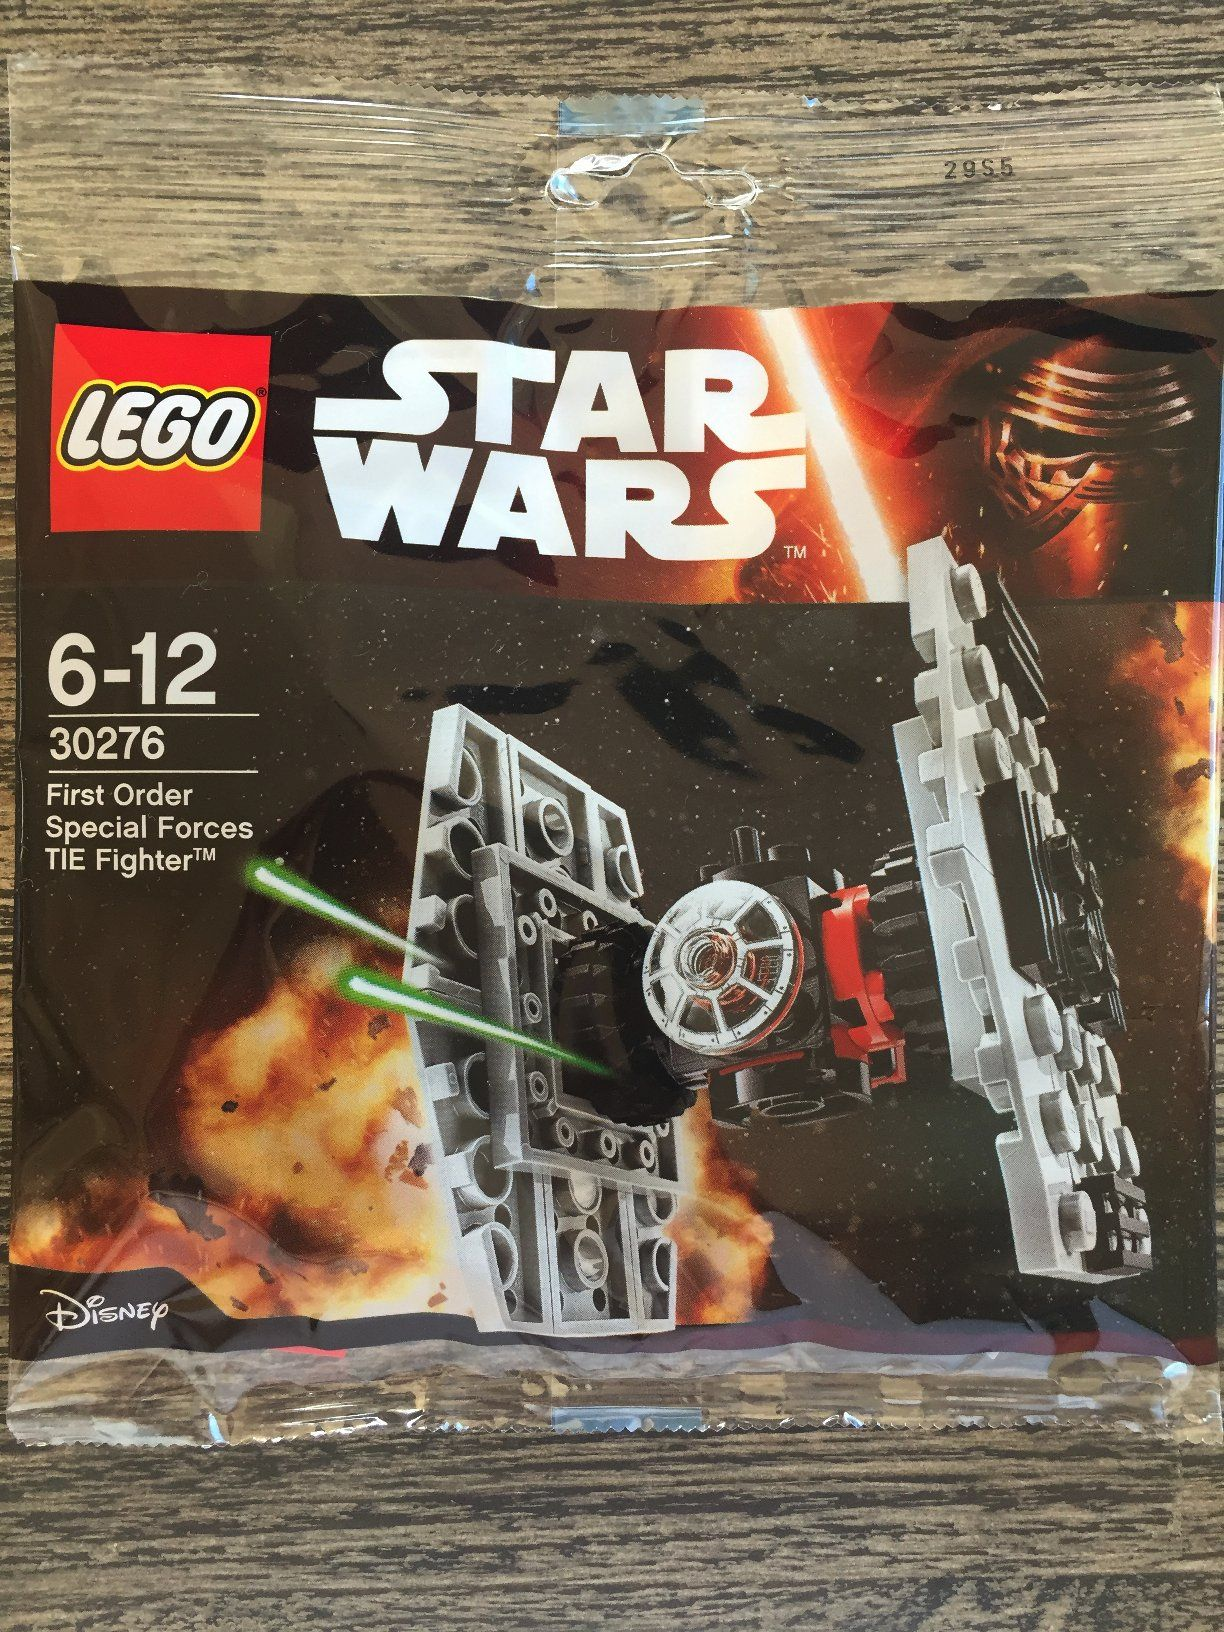 LEGO STAR WARS First Order Special Forces Tie Fighter 30276 Polybag New Sealed